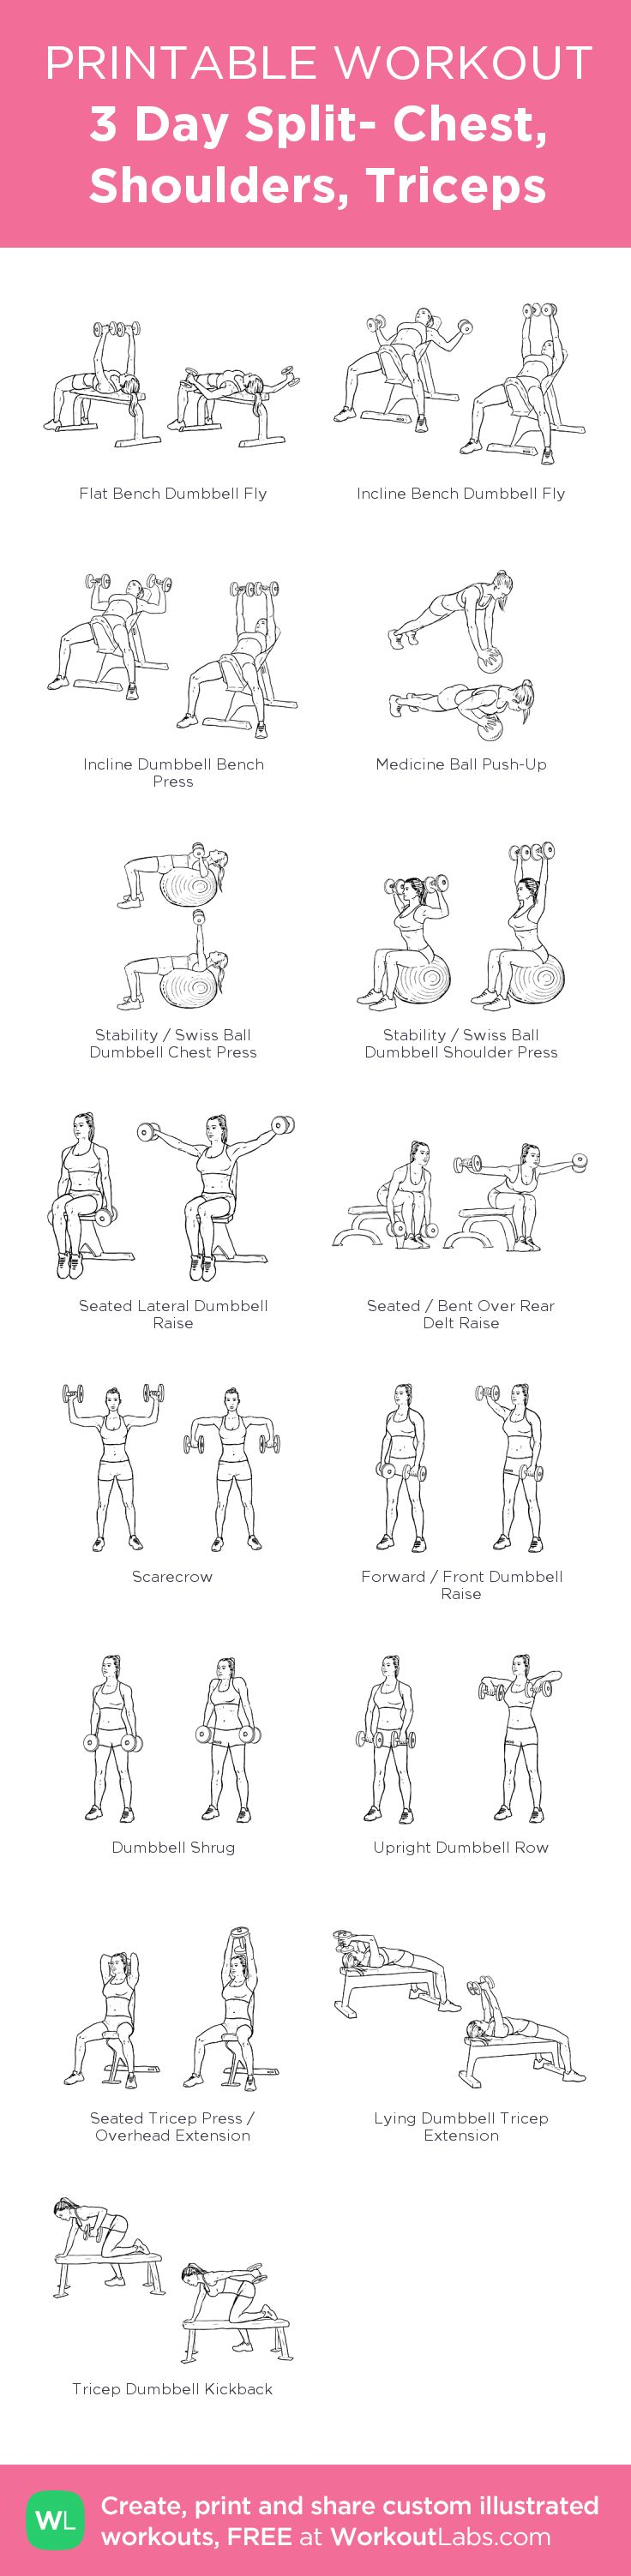 3 Day Split- Chest, Shoulders, Triceps:my visual workout created at WorkoutLabs.com • Click through to customize and download as a FREE PDF! #customworkout